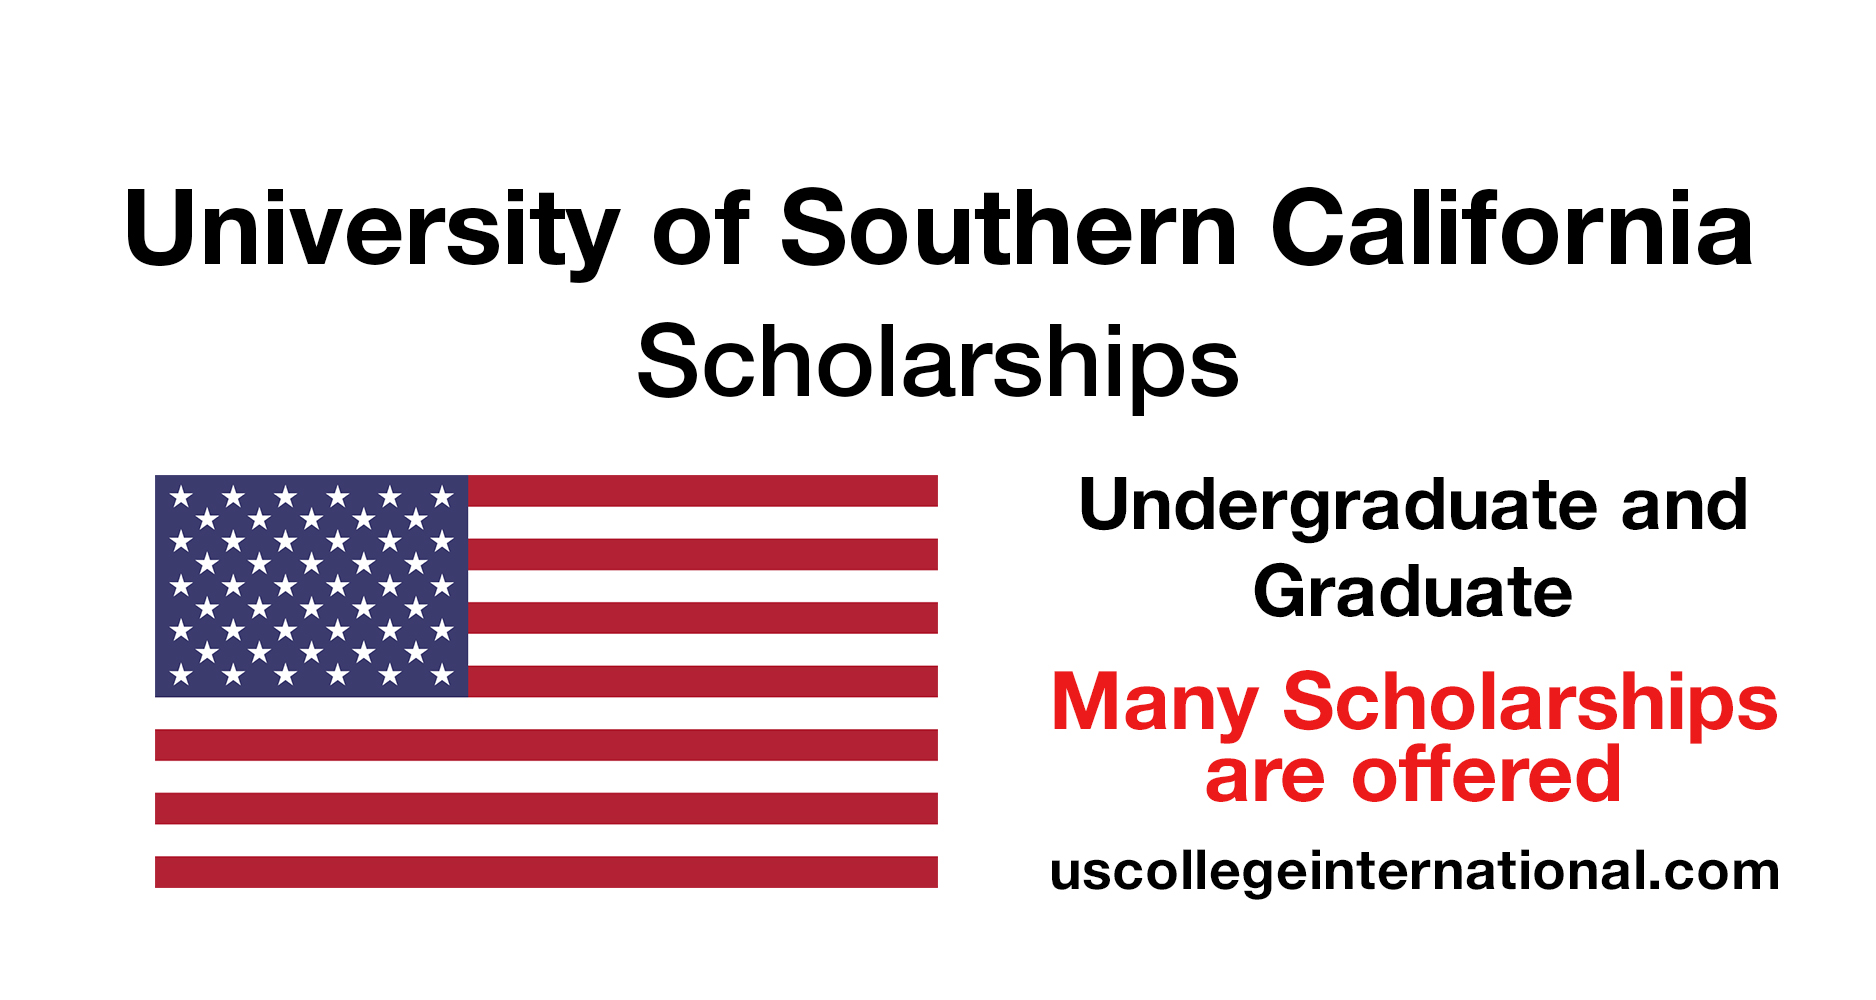 University of Southern California Scholarships